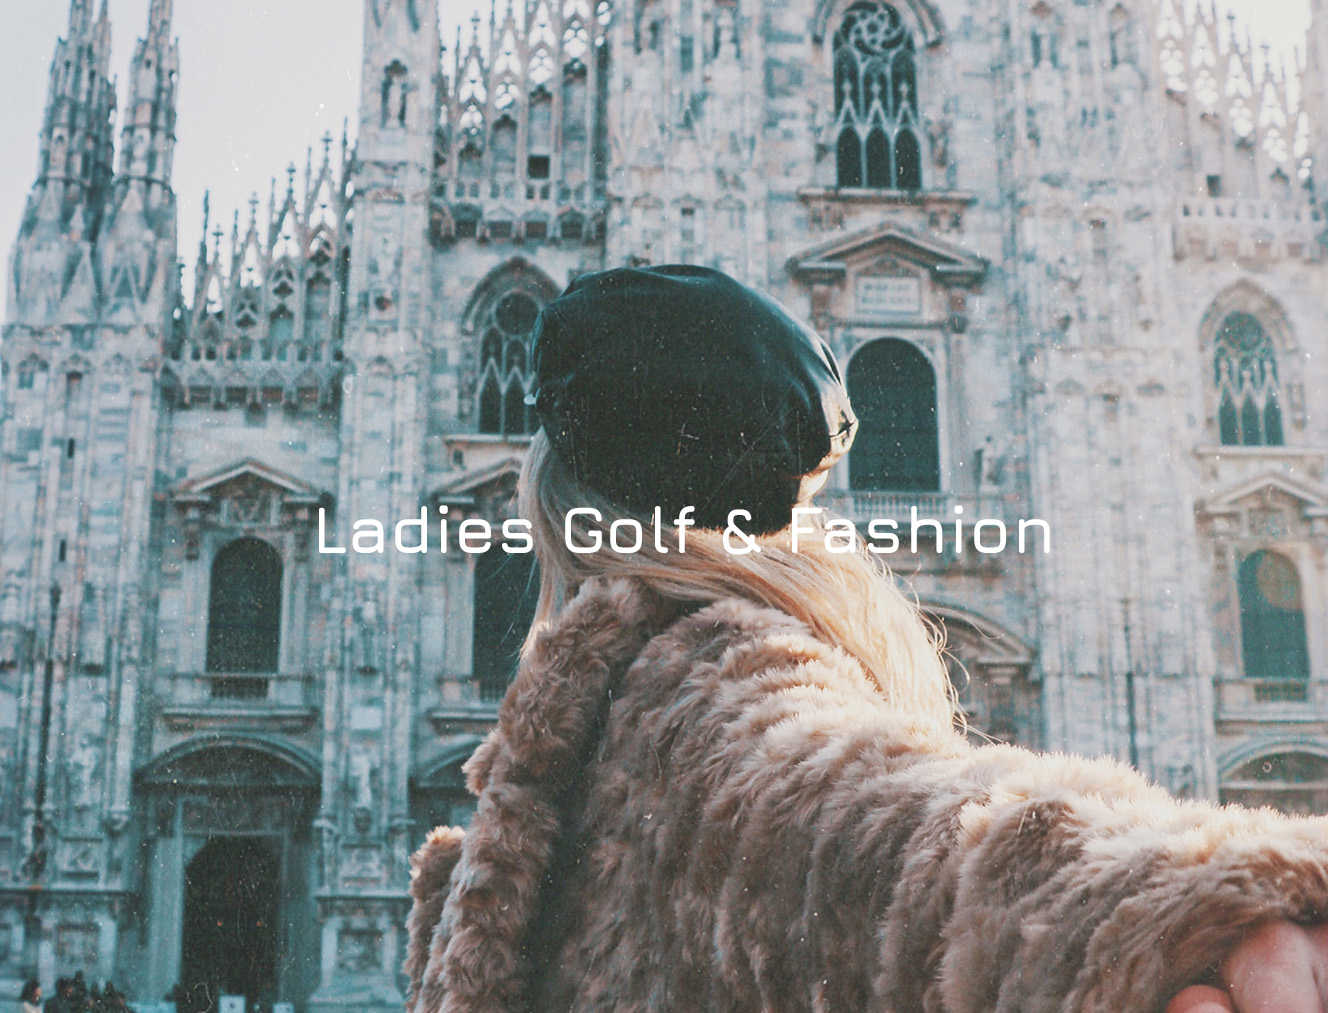 Ladies' Golf & Fashion